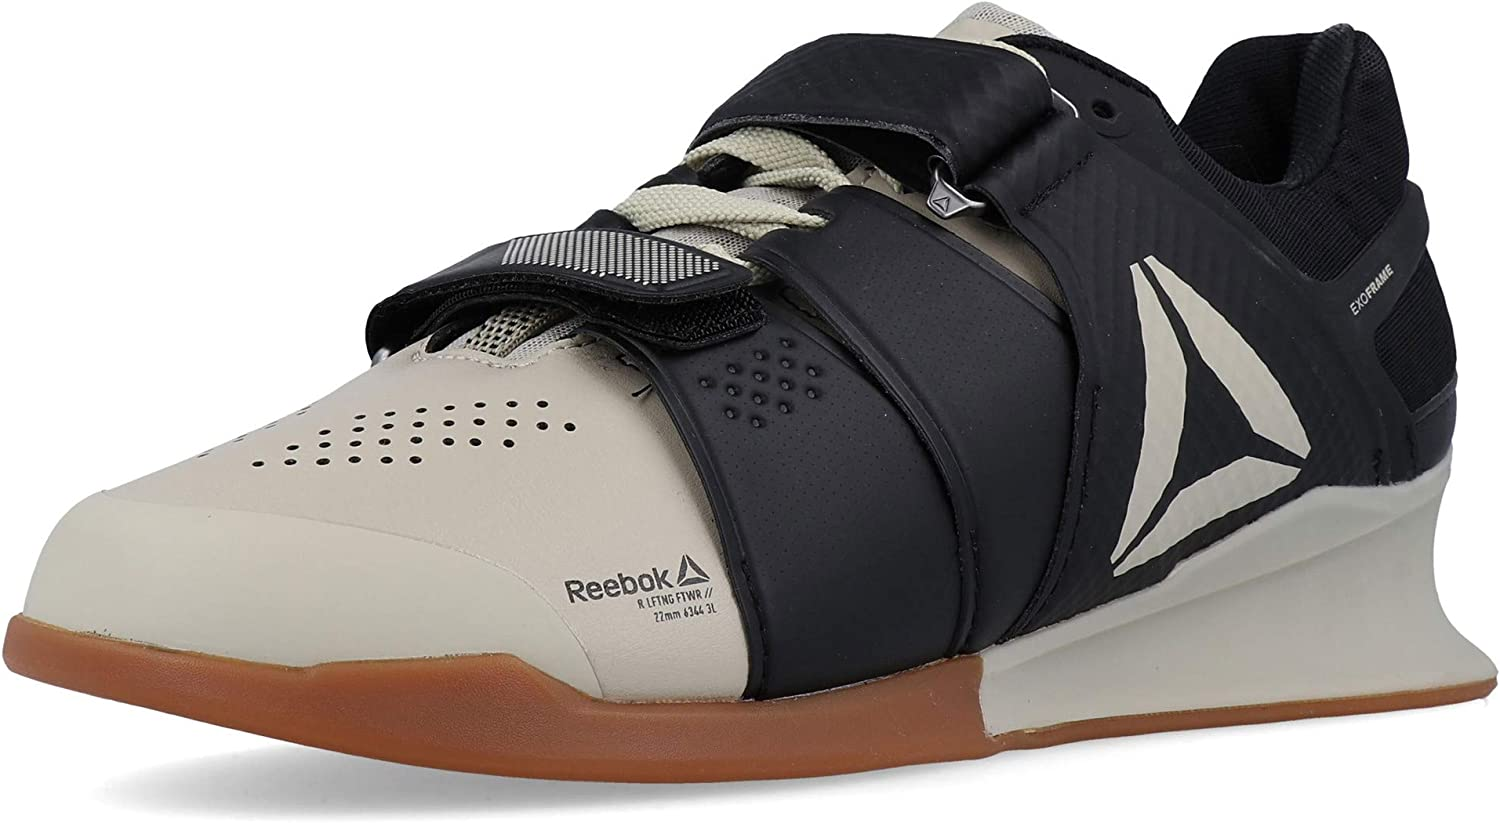 Reebok Legacylifter, Chaussures de Fitness Homme Multicolore Light Sand Black Gum 000